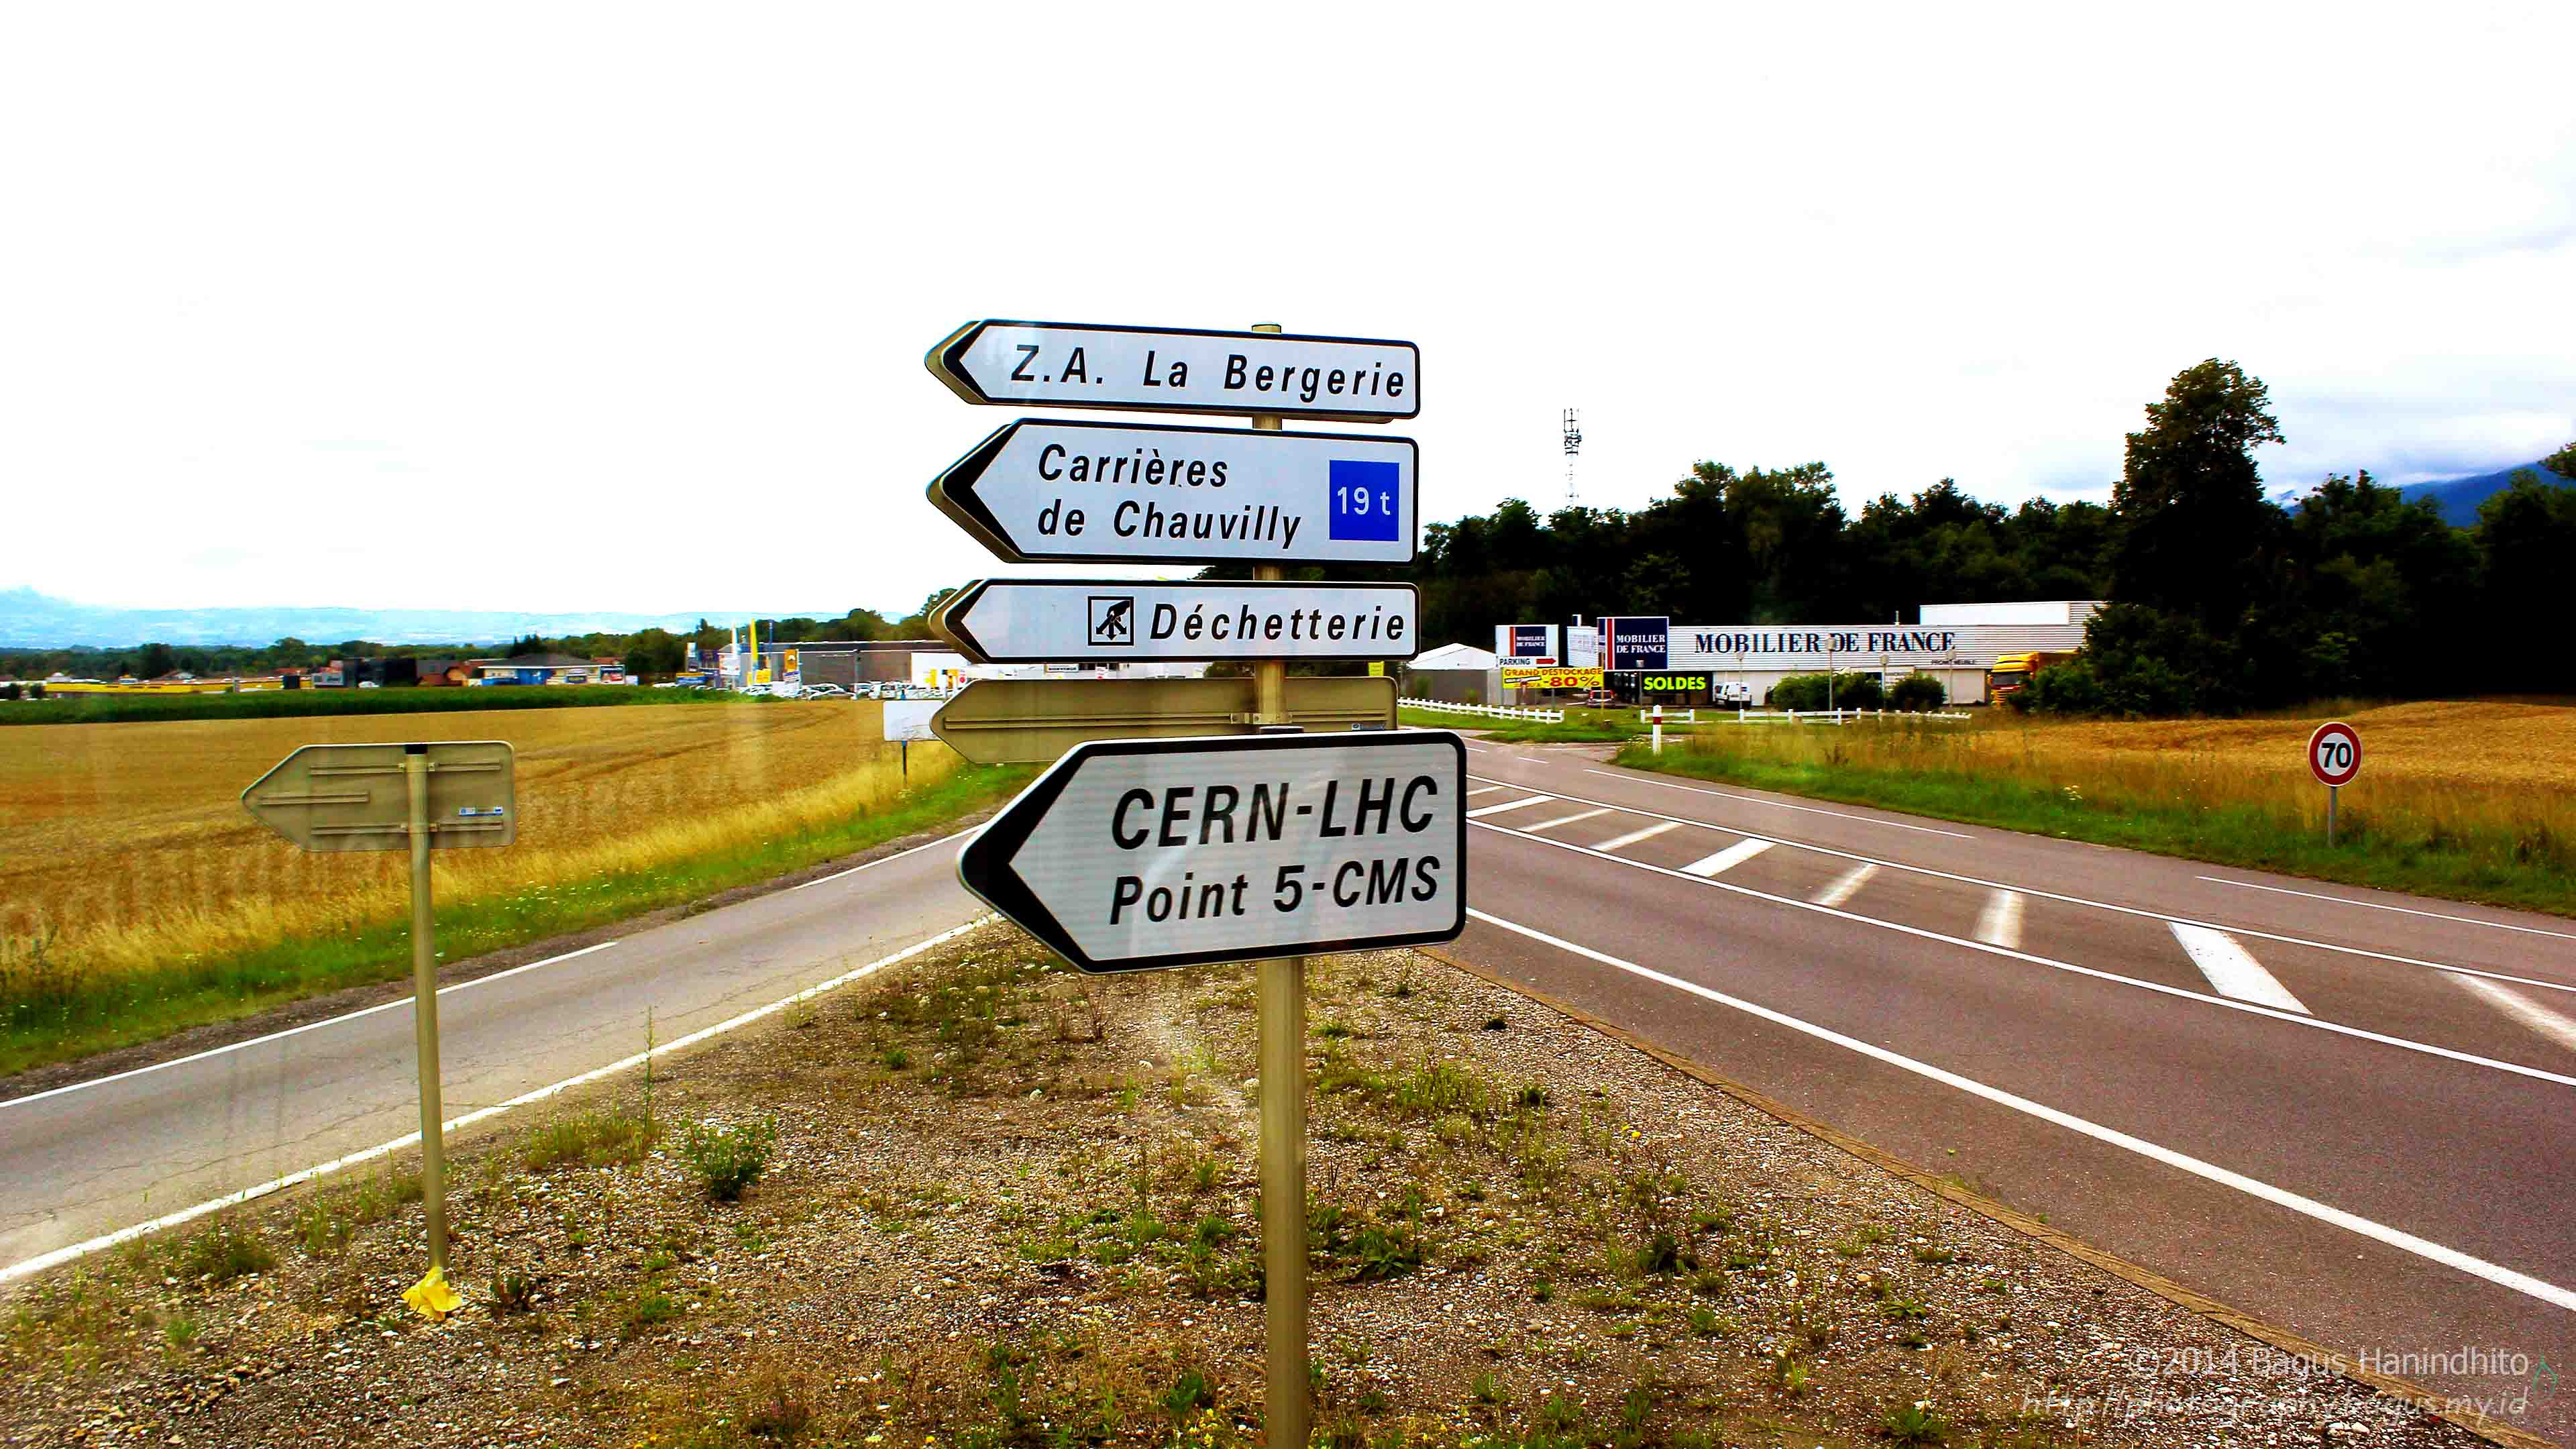 The sign at intersection shows the direction to CERN LHC Point 5 - CMS